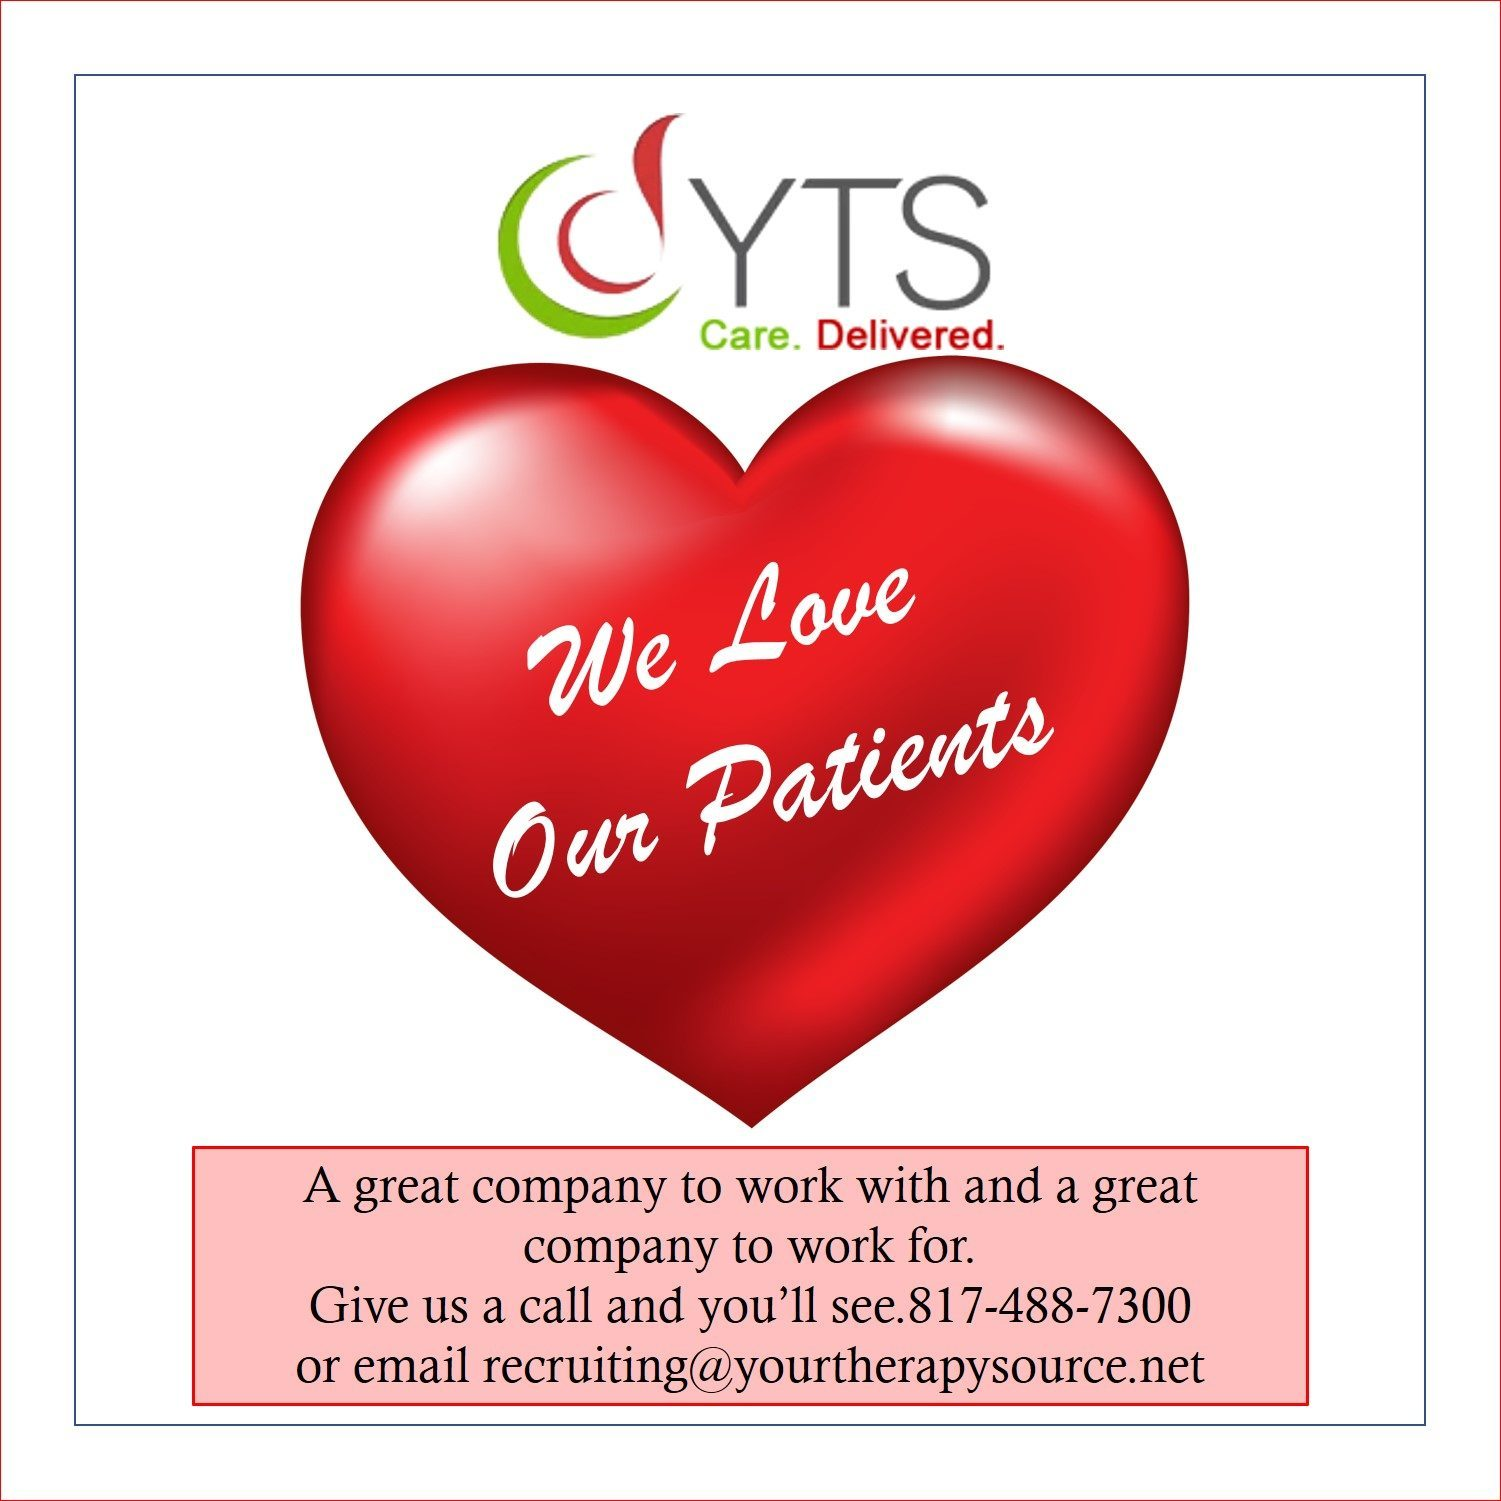 We Love Our Patients!